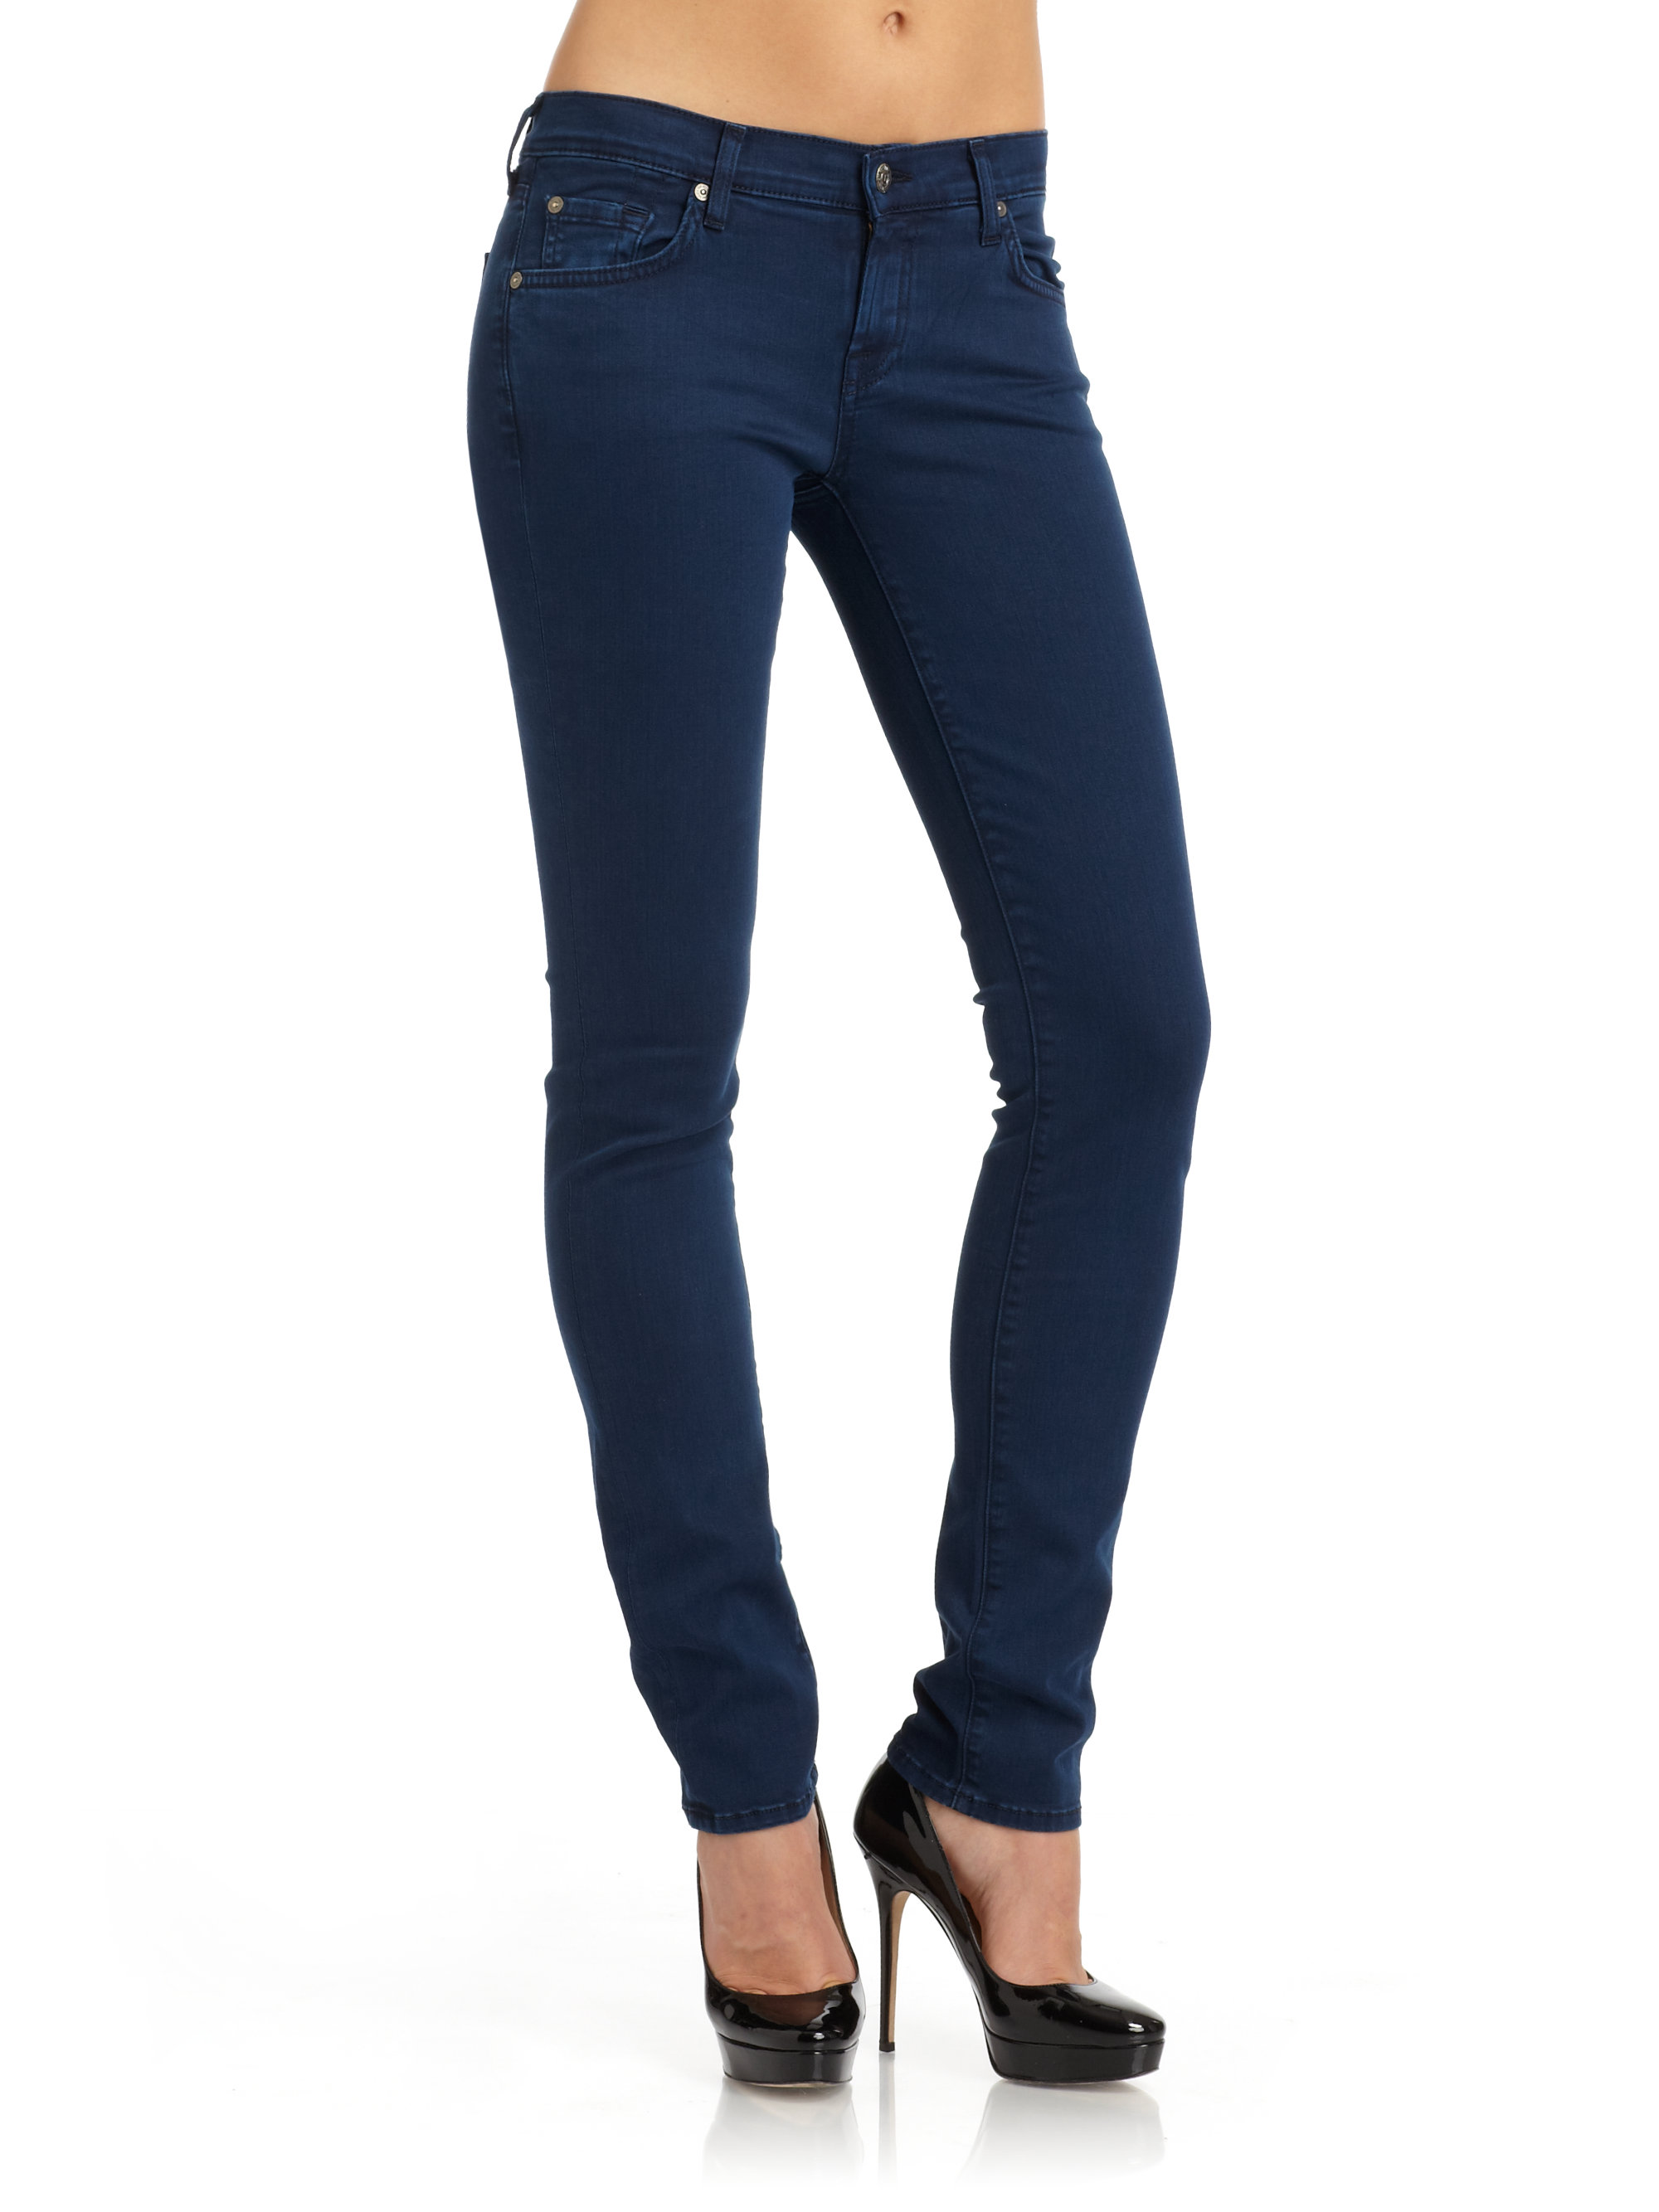 lyst 7 for all mankind roxanne rhinestone skinny jeans in blue. Black Bedroom Furniture Sets. Home Design Ideas